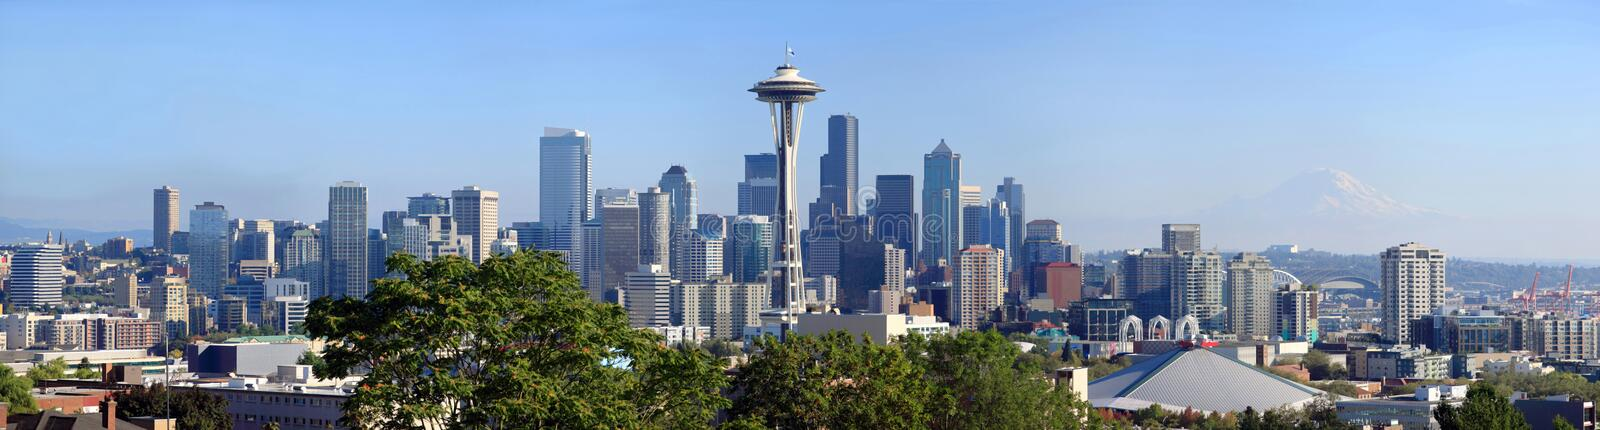 Panoramic skyline of Seattle WA., at midday. royalty free stock image